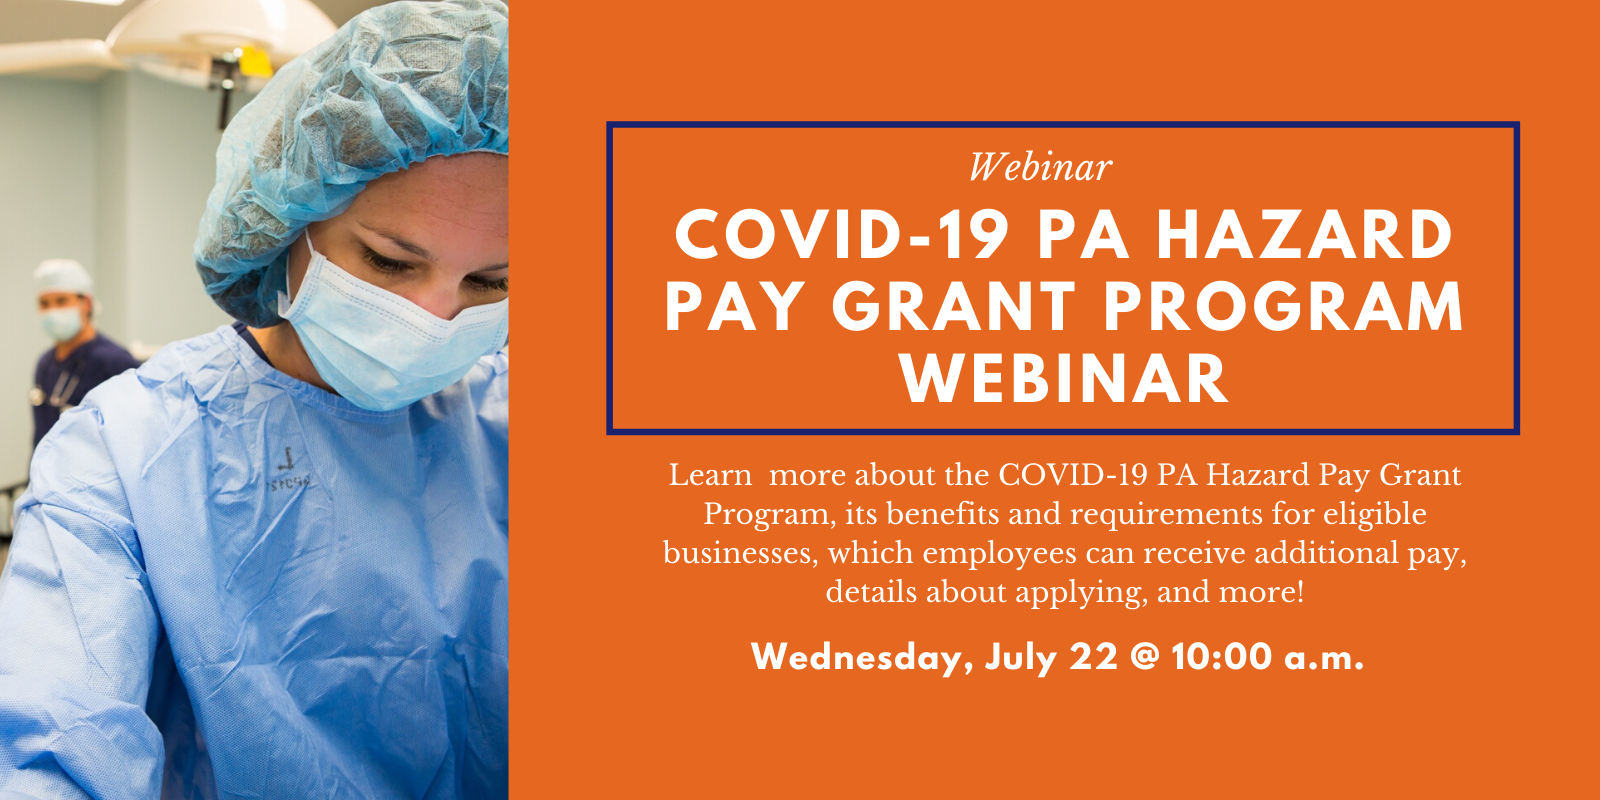 COVID-19 Hazard Pay Grant Program Webinar (7.22)